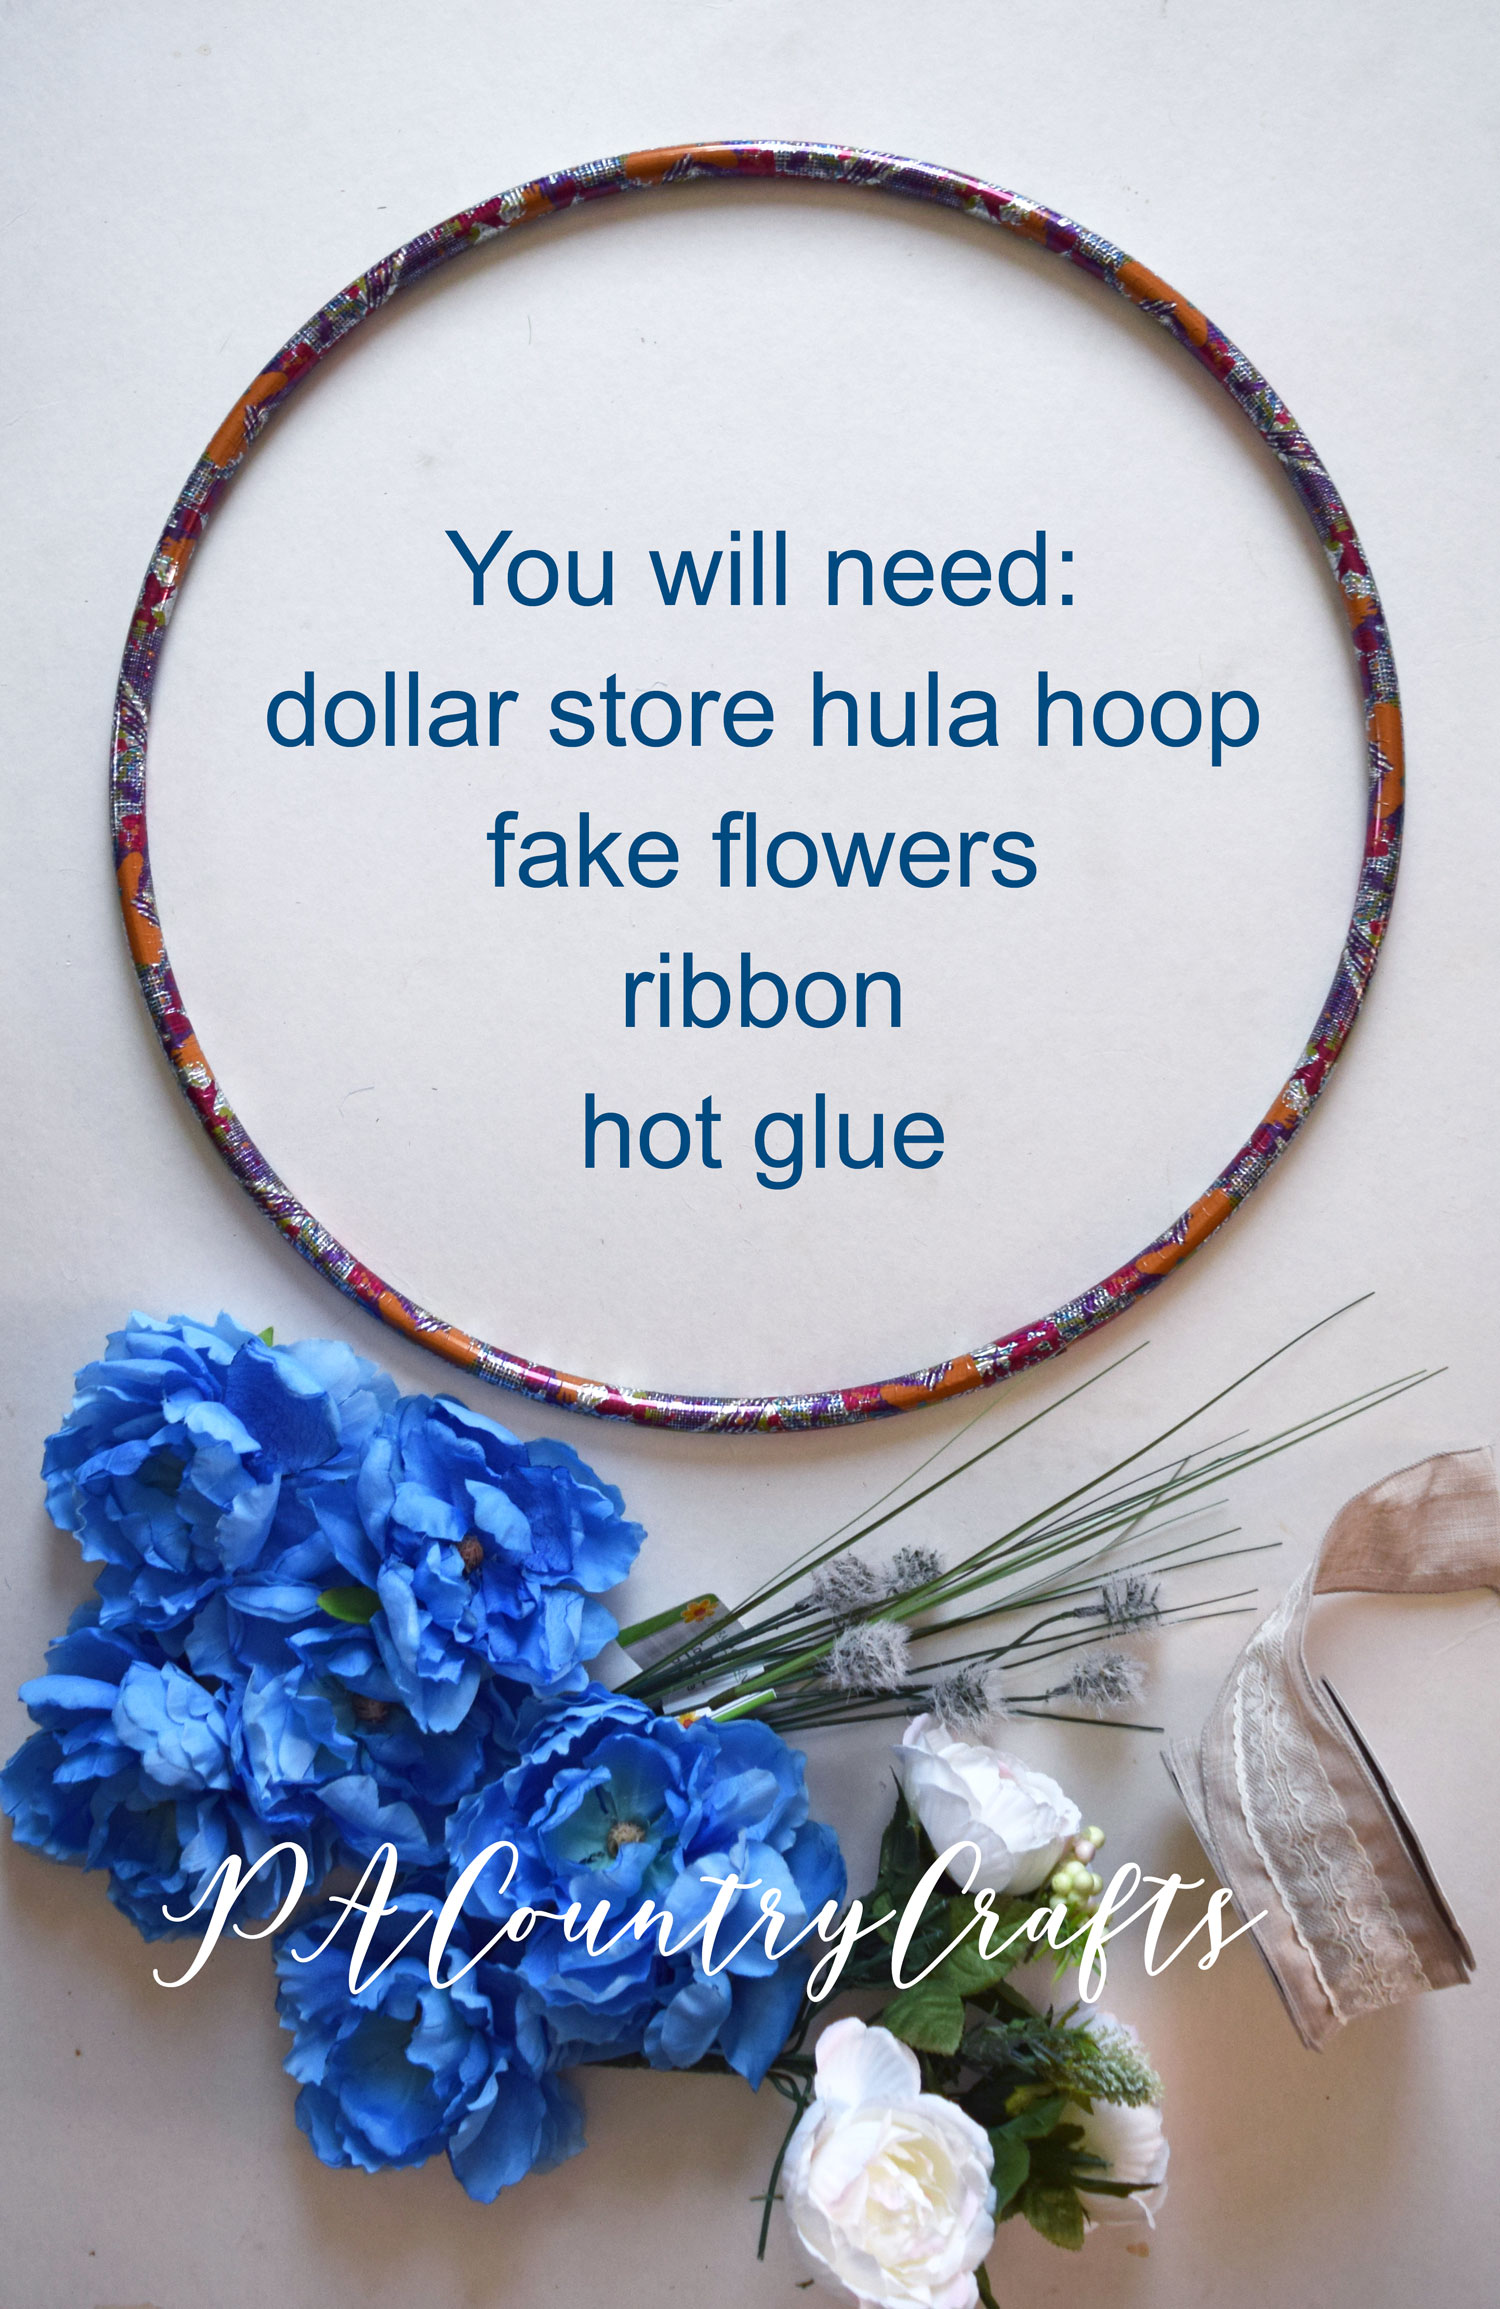 Dollar Store Hula Hoop Spring Wreath Tutorial